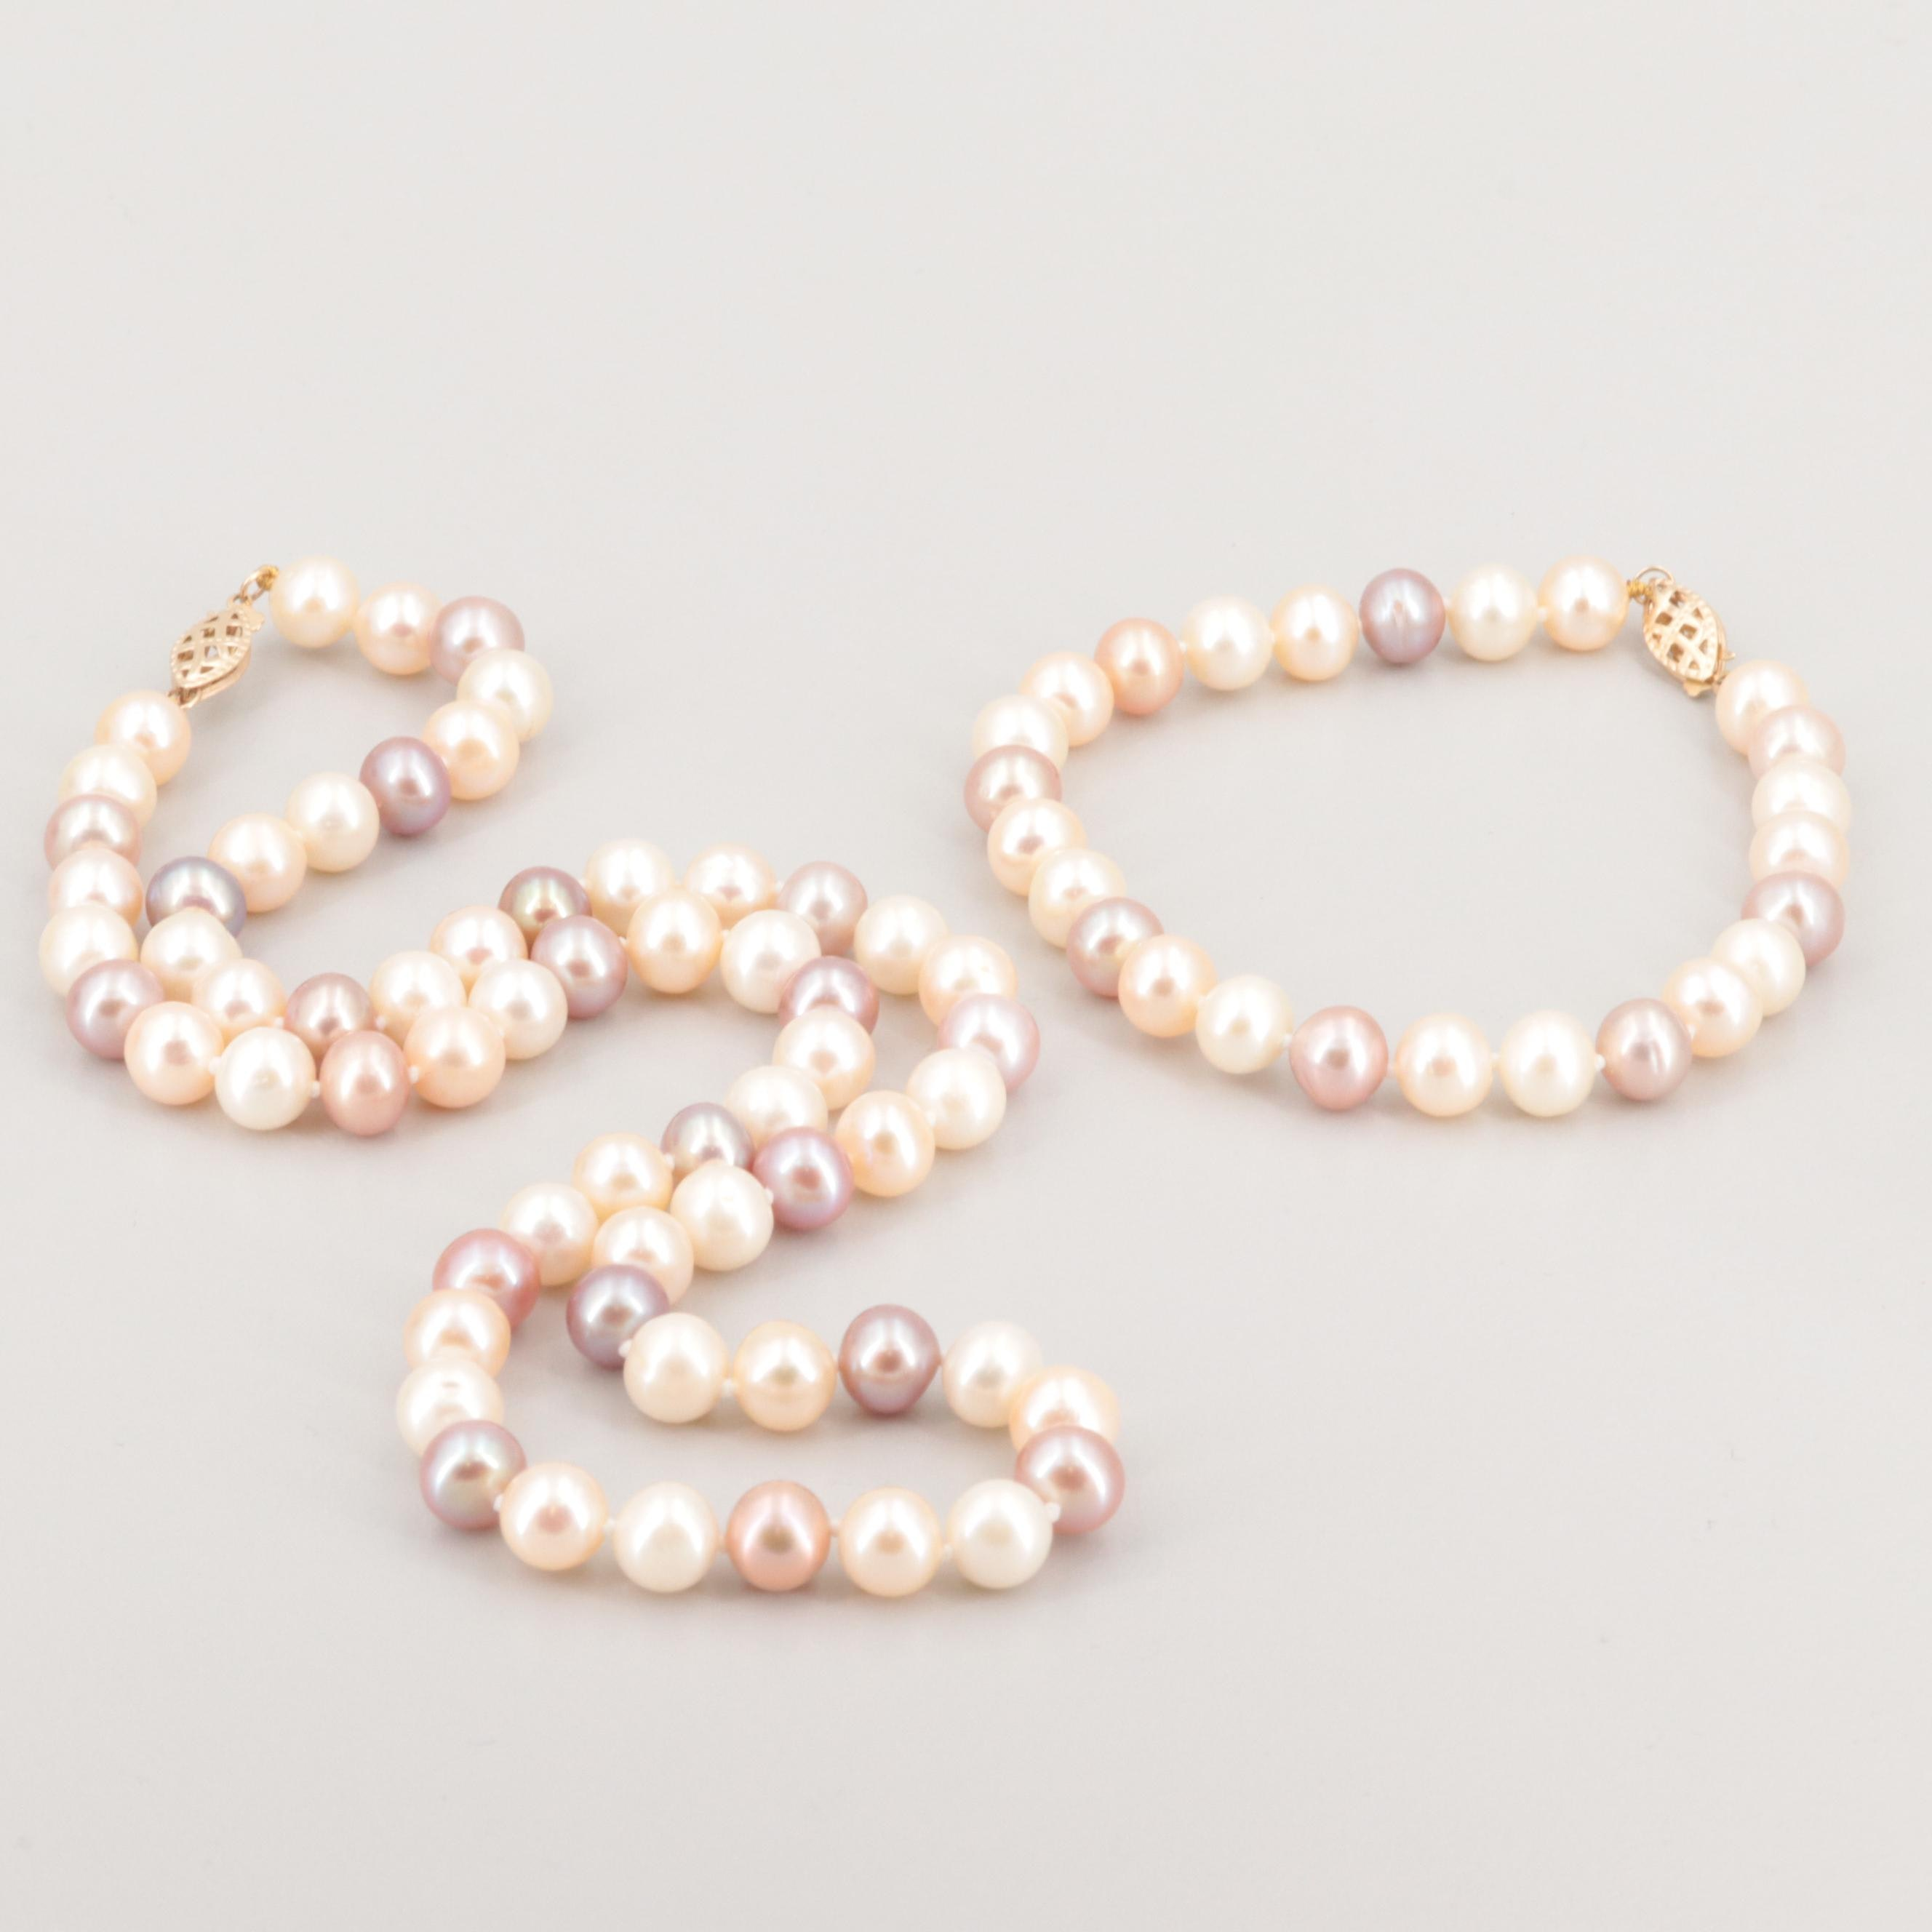 14K Yellow Gold Cultured Pearl Necklace and Bracelet Set